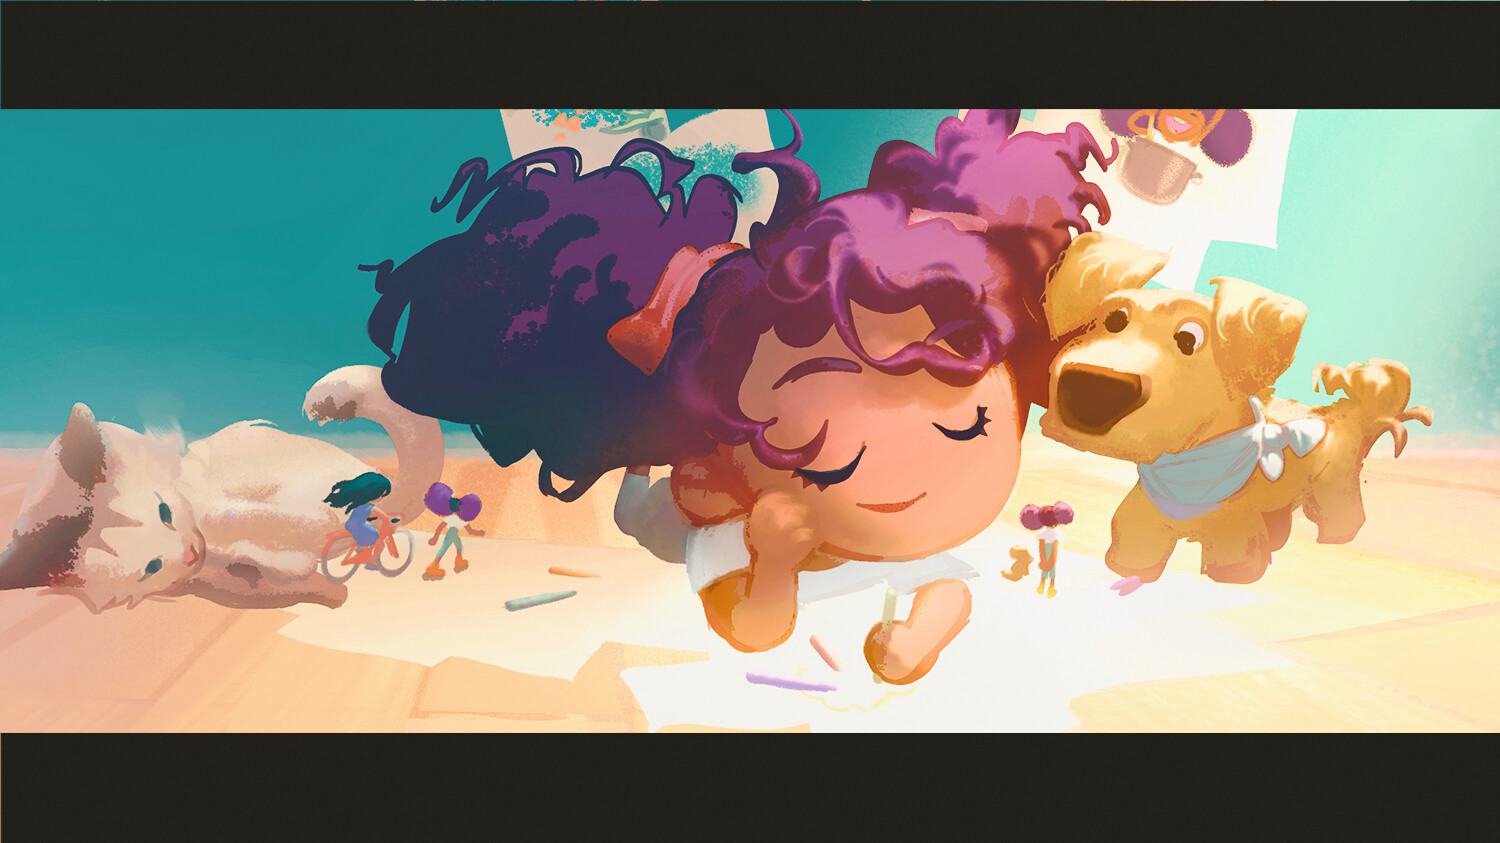 (snippet of full image for now)